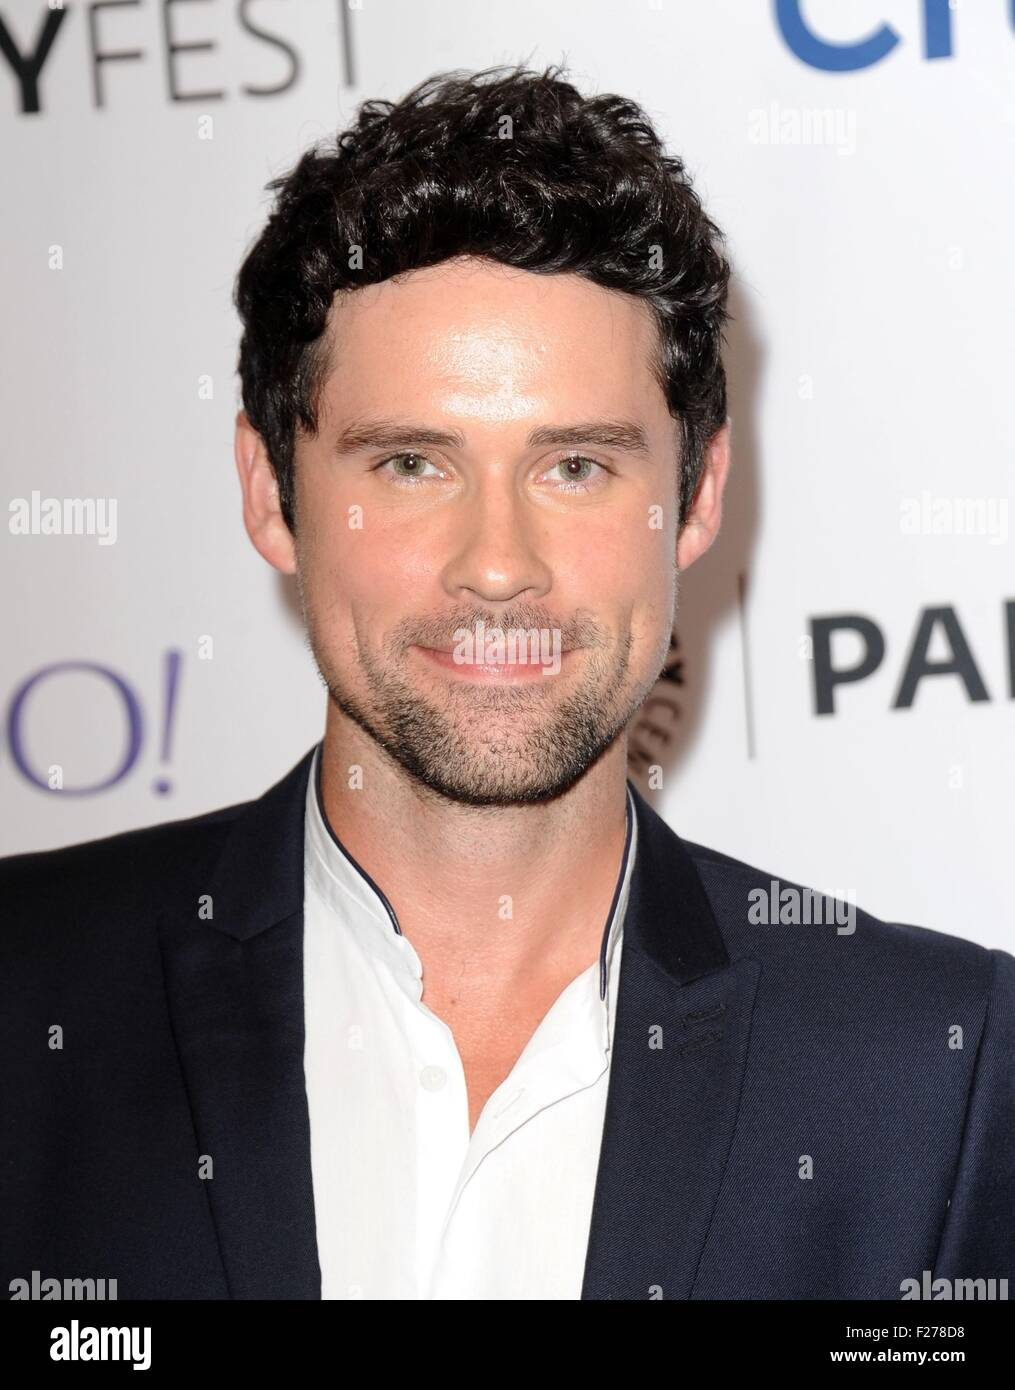 benjaman hollingsworth at arrivals for code black at the 2015 stock